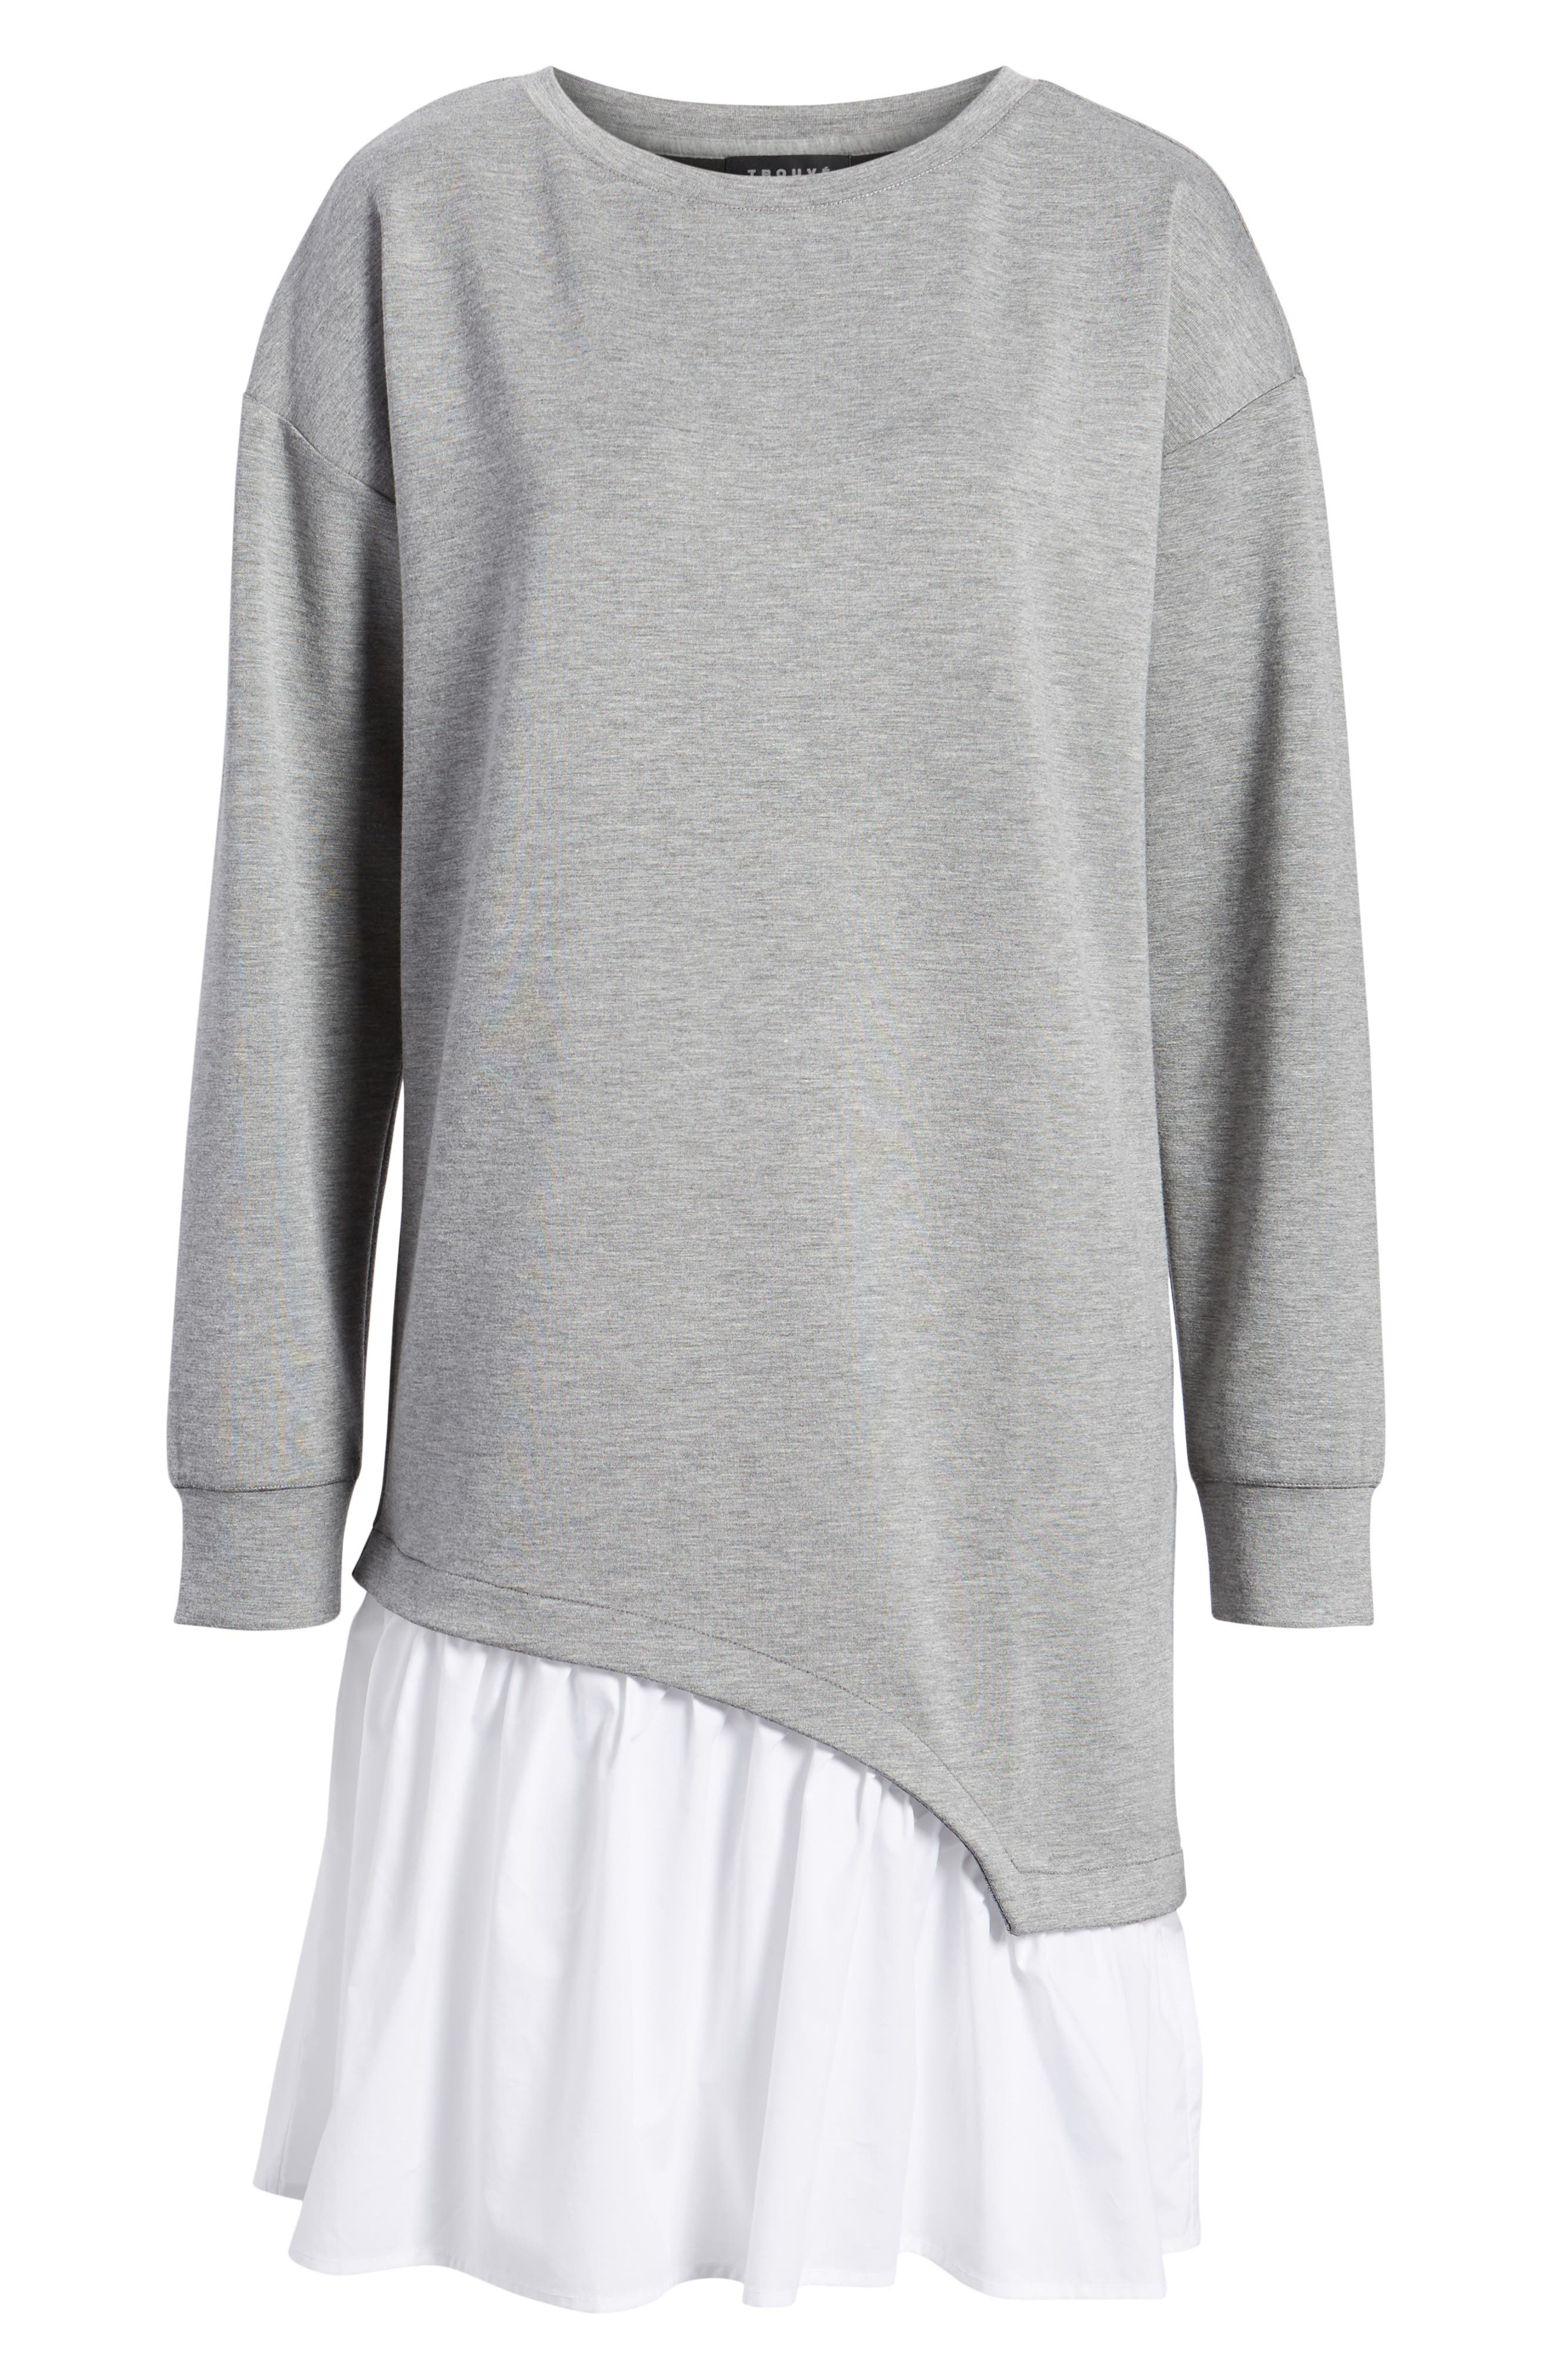 Mixed Media Sweatshirt Dress,                             Alternate thumbnail 6, color,                             Grey Heather